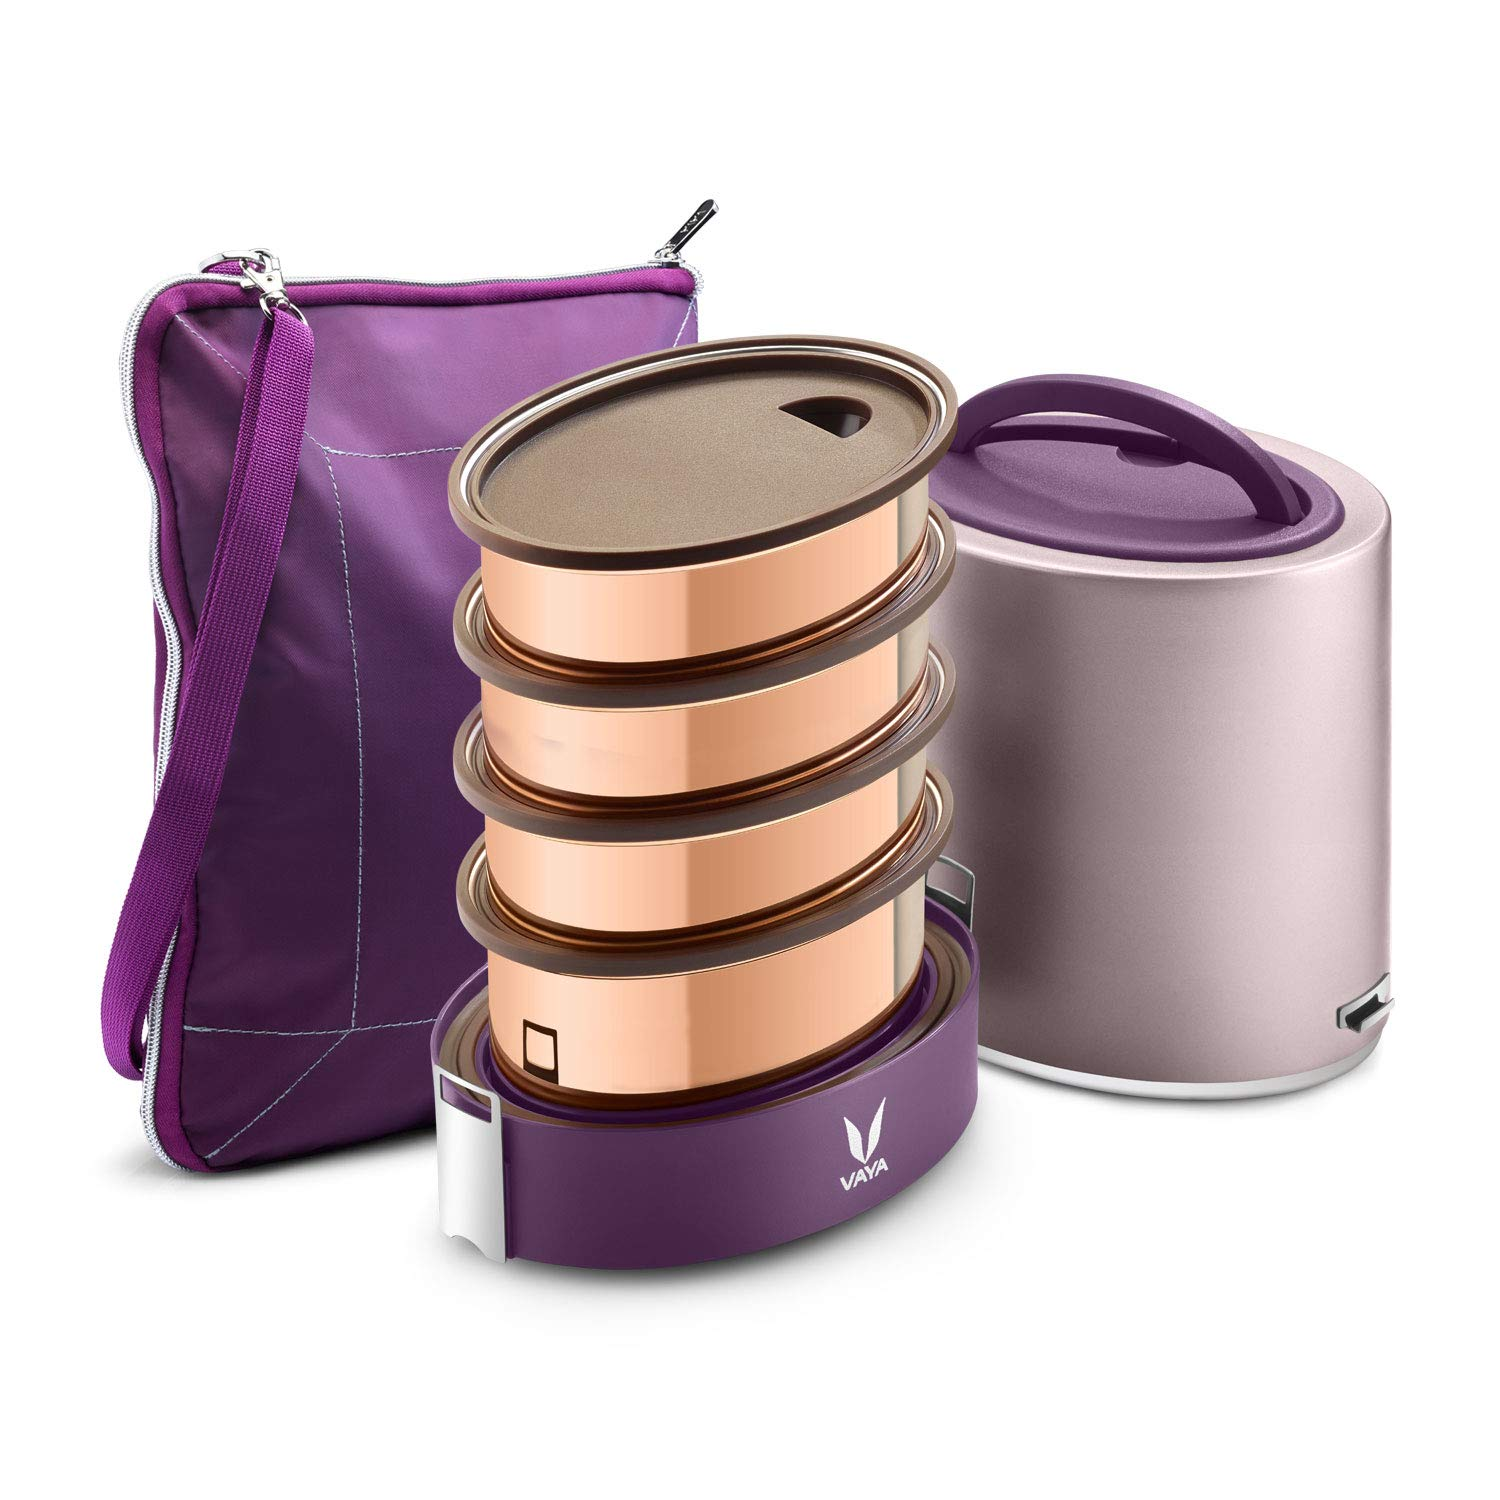 Vaya Tyffyn Jumbo Purple Copper-Finished Stainless Steel Lunch Box with Bagmat, 1300 ml, 4 Containers, Purple (B07MG57ZCH) Amazon Price History, Amazon Price Tracker